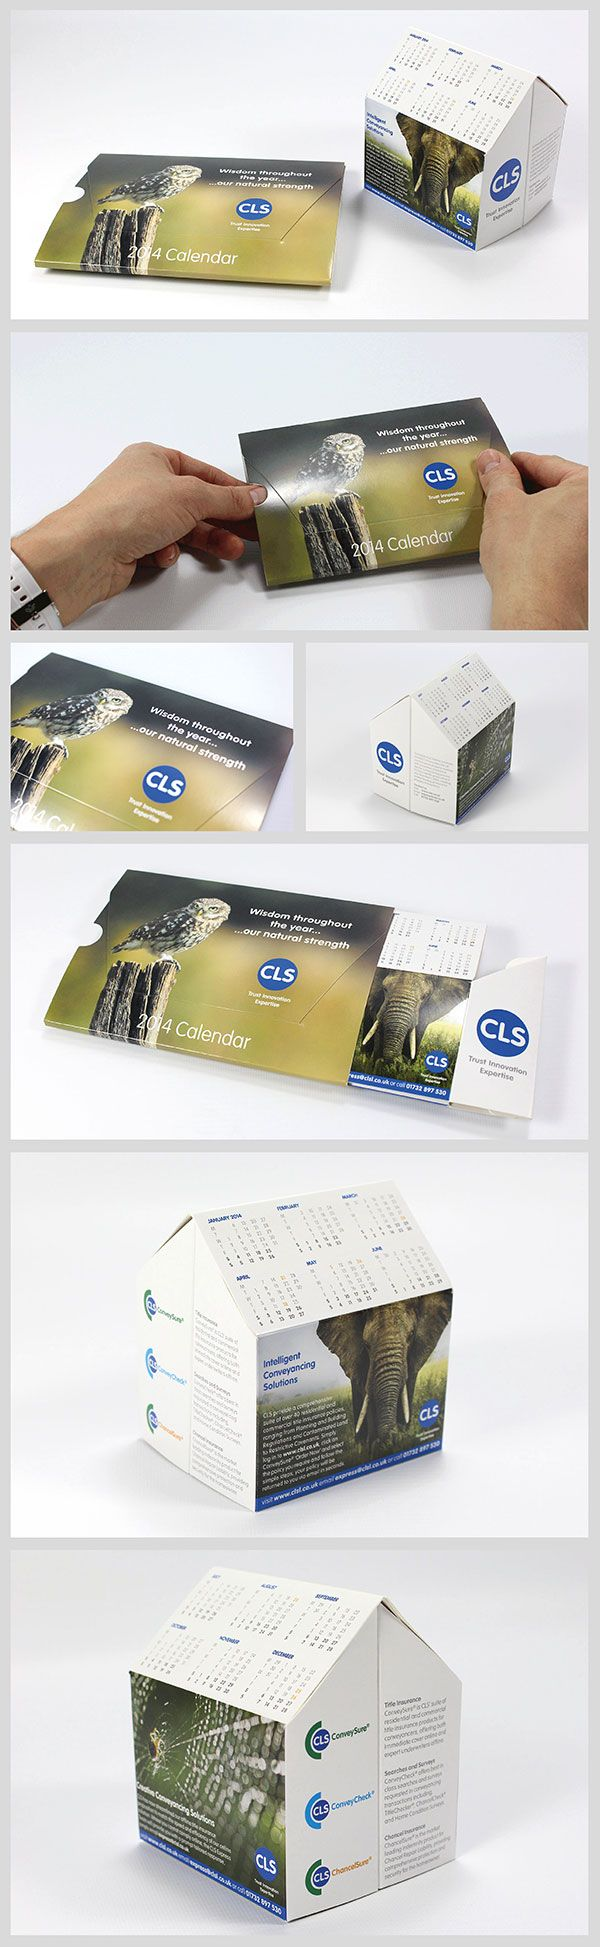 Direct Mail 'pop-up' House Calendar for CLS (Business Card Creative Construction)